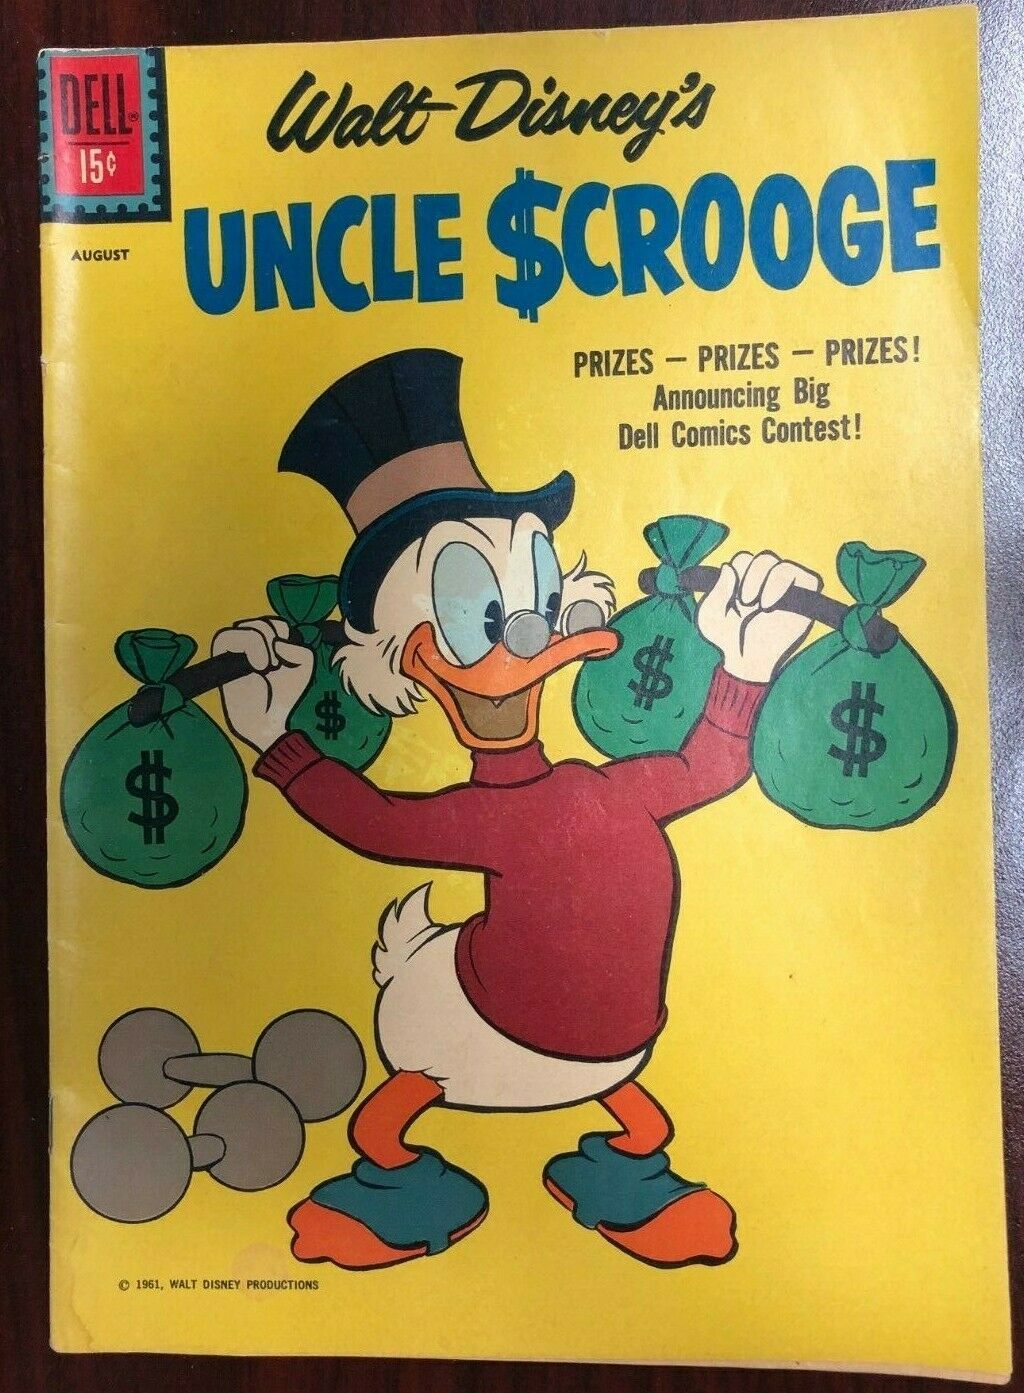 UNCLE SCROOGE #34 (1961) Dell Comics VG+